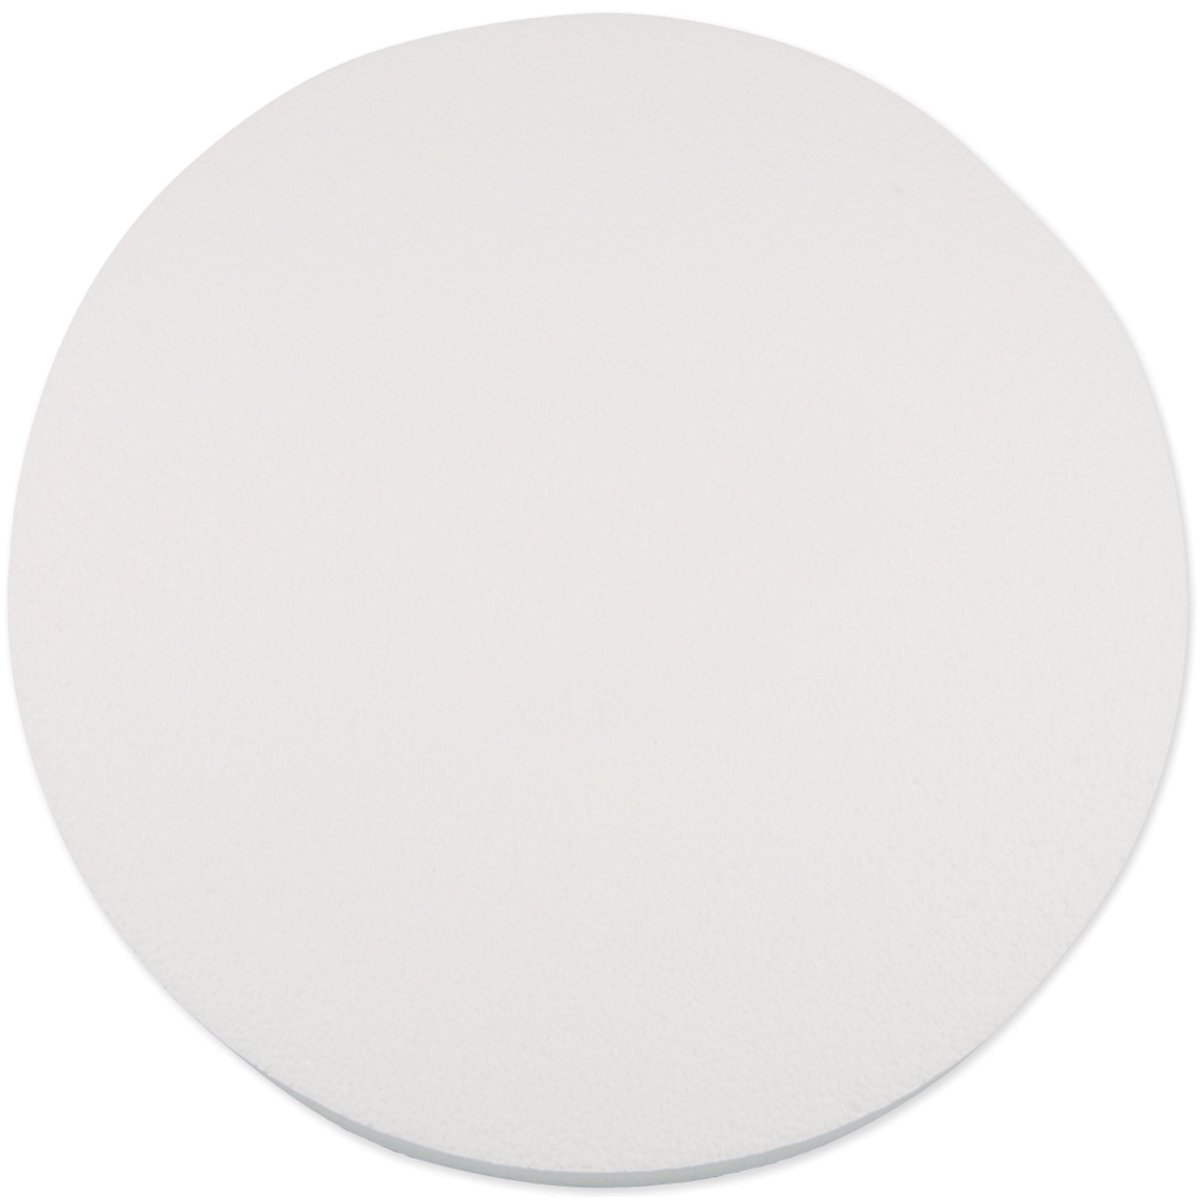 Smoothfoam Disc Crafts Foam for Modeling, 12 by 1-Inch, White Notions - In Network RT935